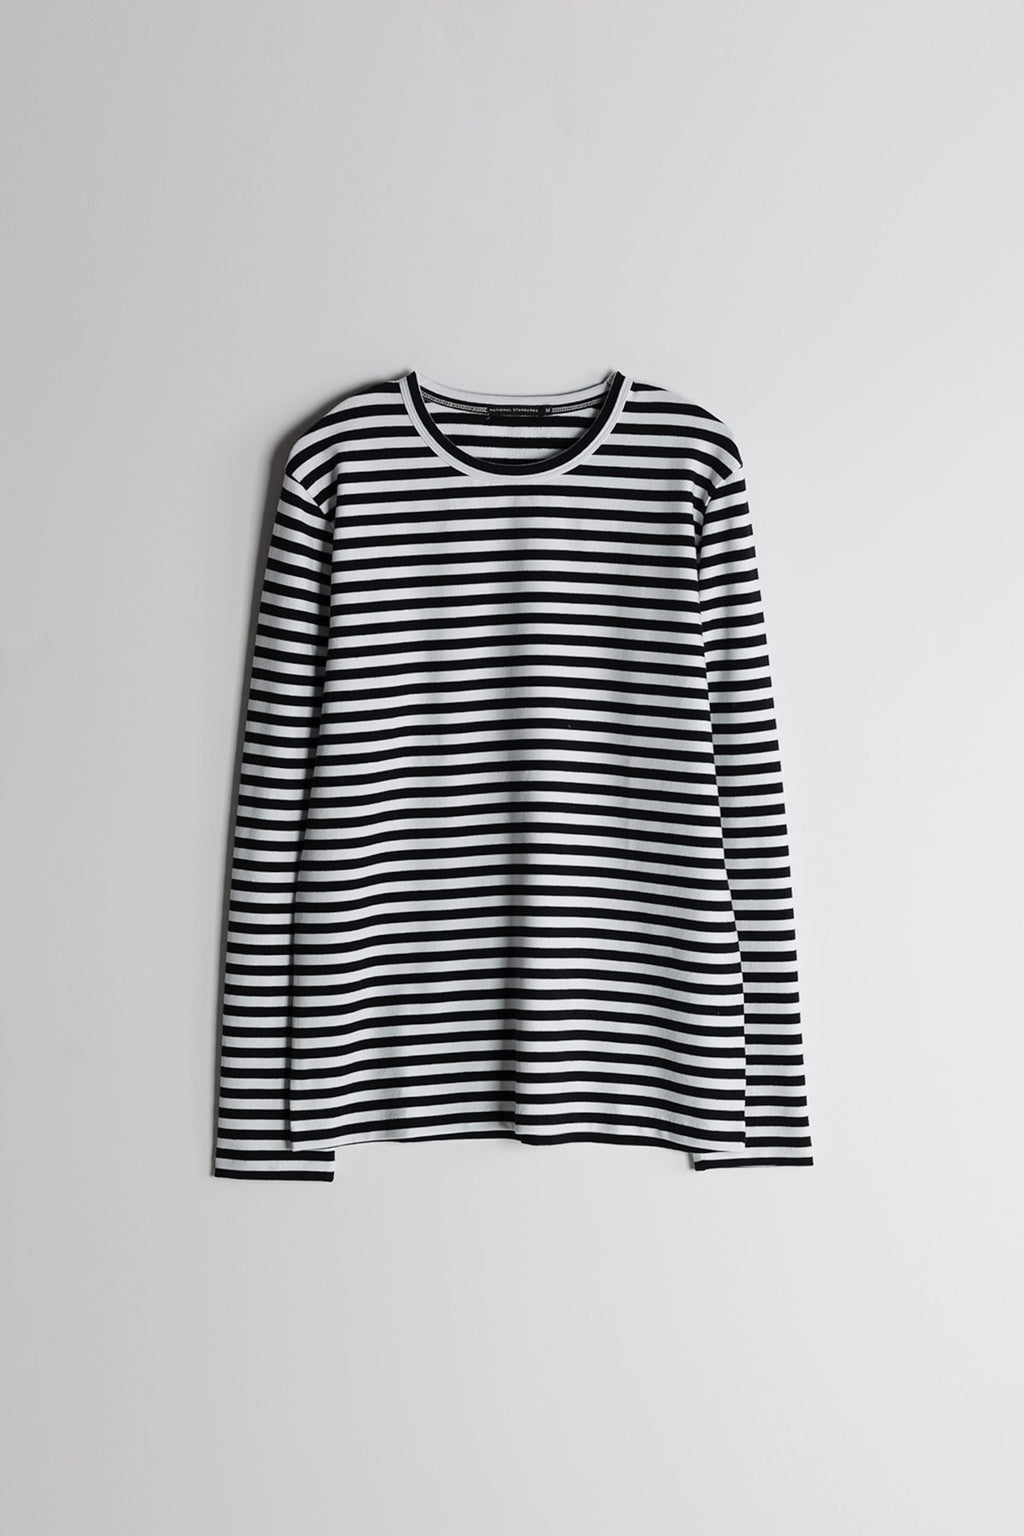 Marine Stripe L/S Crew in Black and White